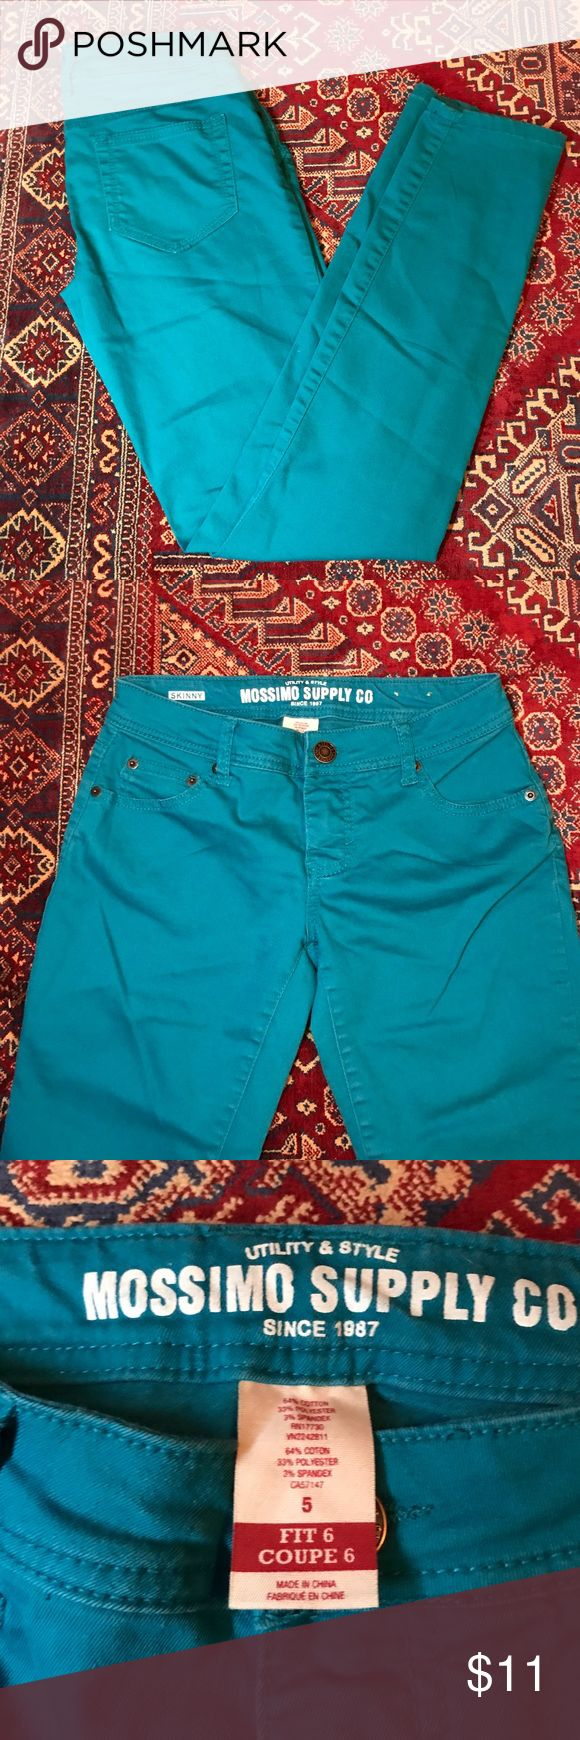 Blue/teal Mossimo skinny jeans Mossimo Supply Co. Blue/Teal skinny jeans/pants Mossimo Supply Co Jeans Skinny